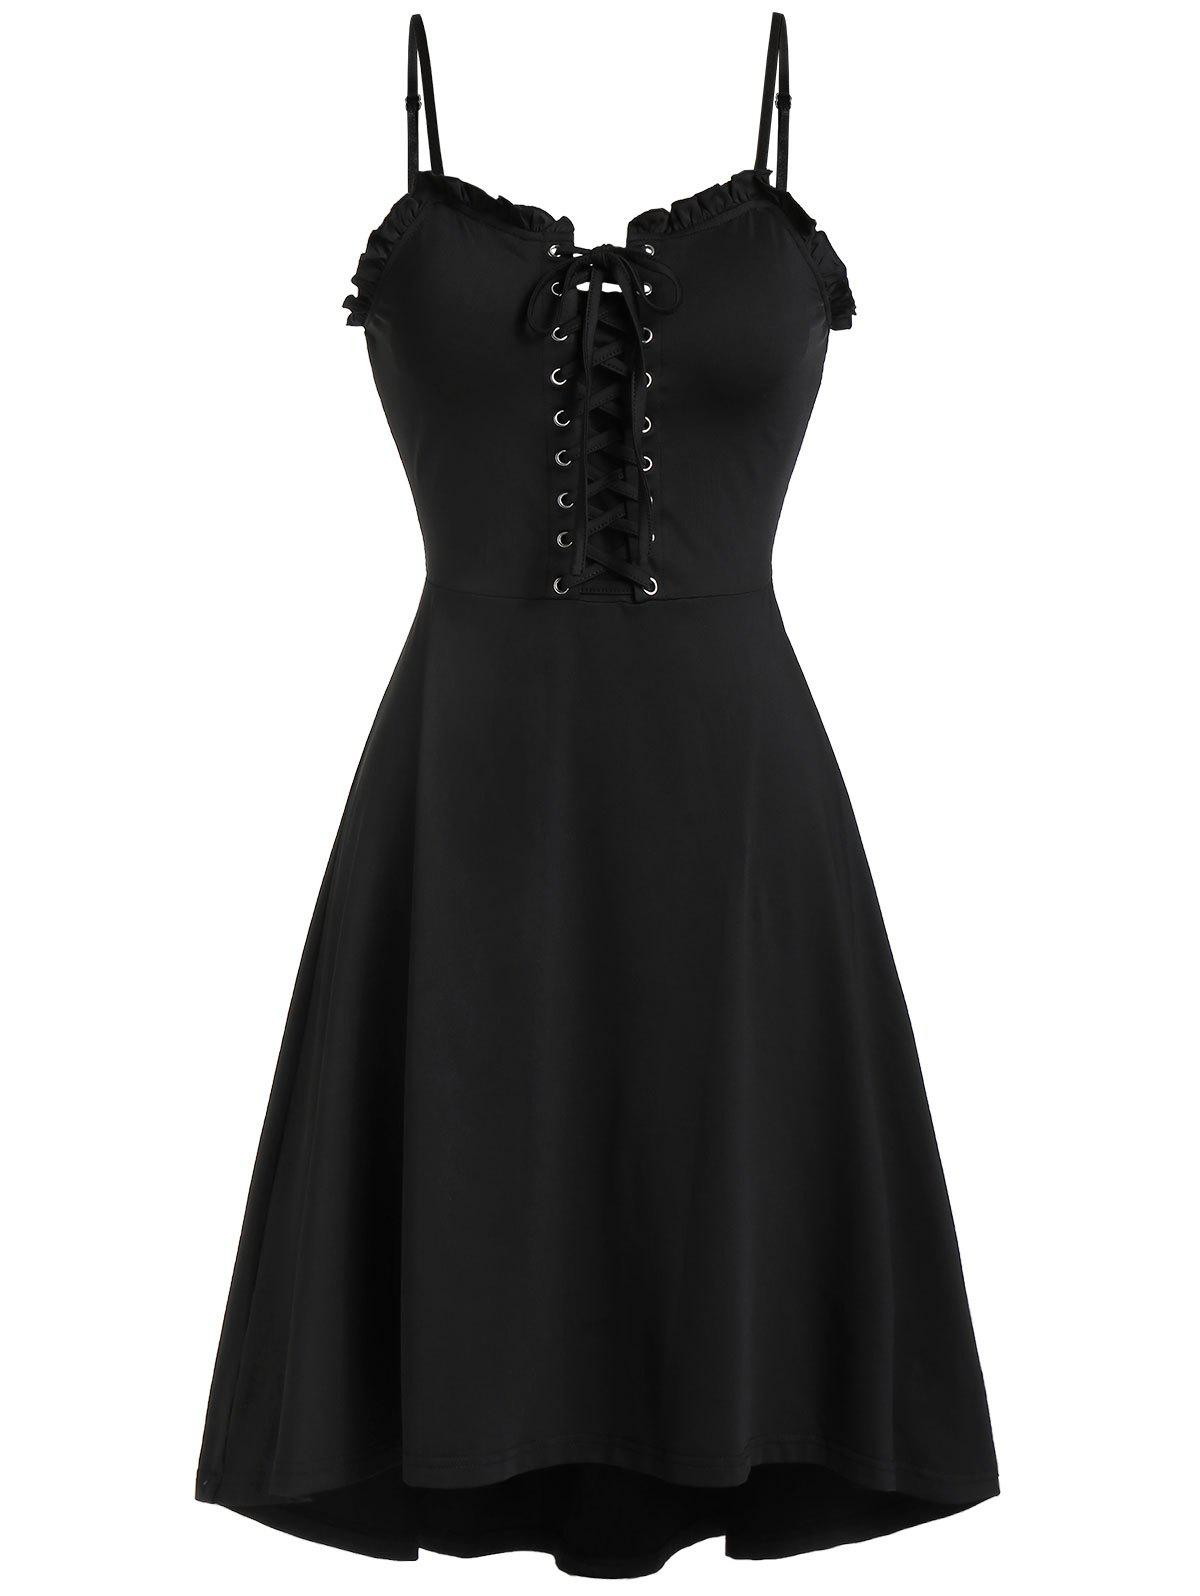 Shops Spaghetti Strap Lace Up Fit and Flare Dress